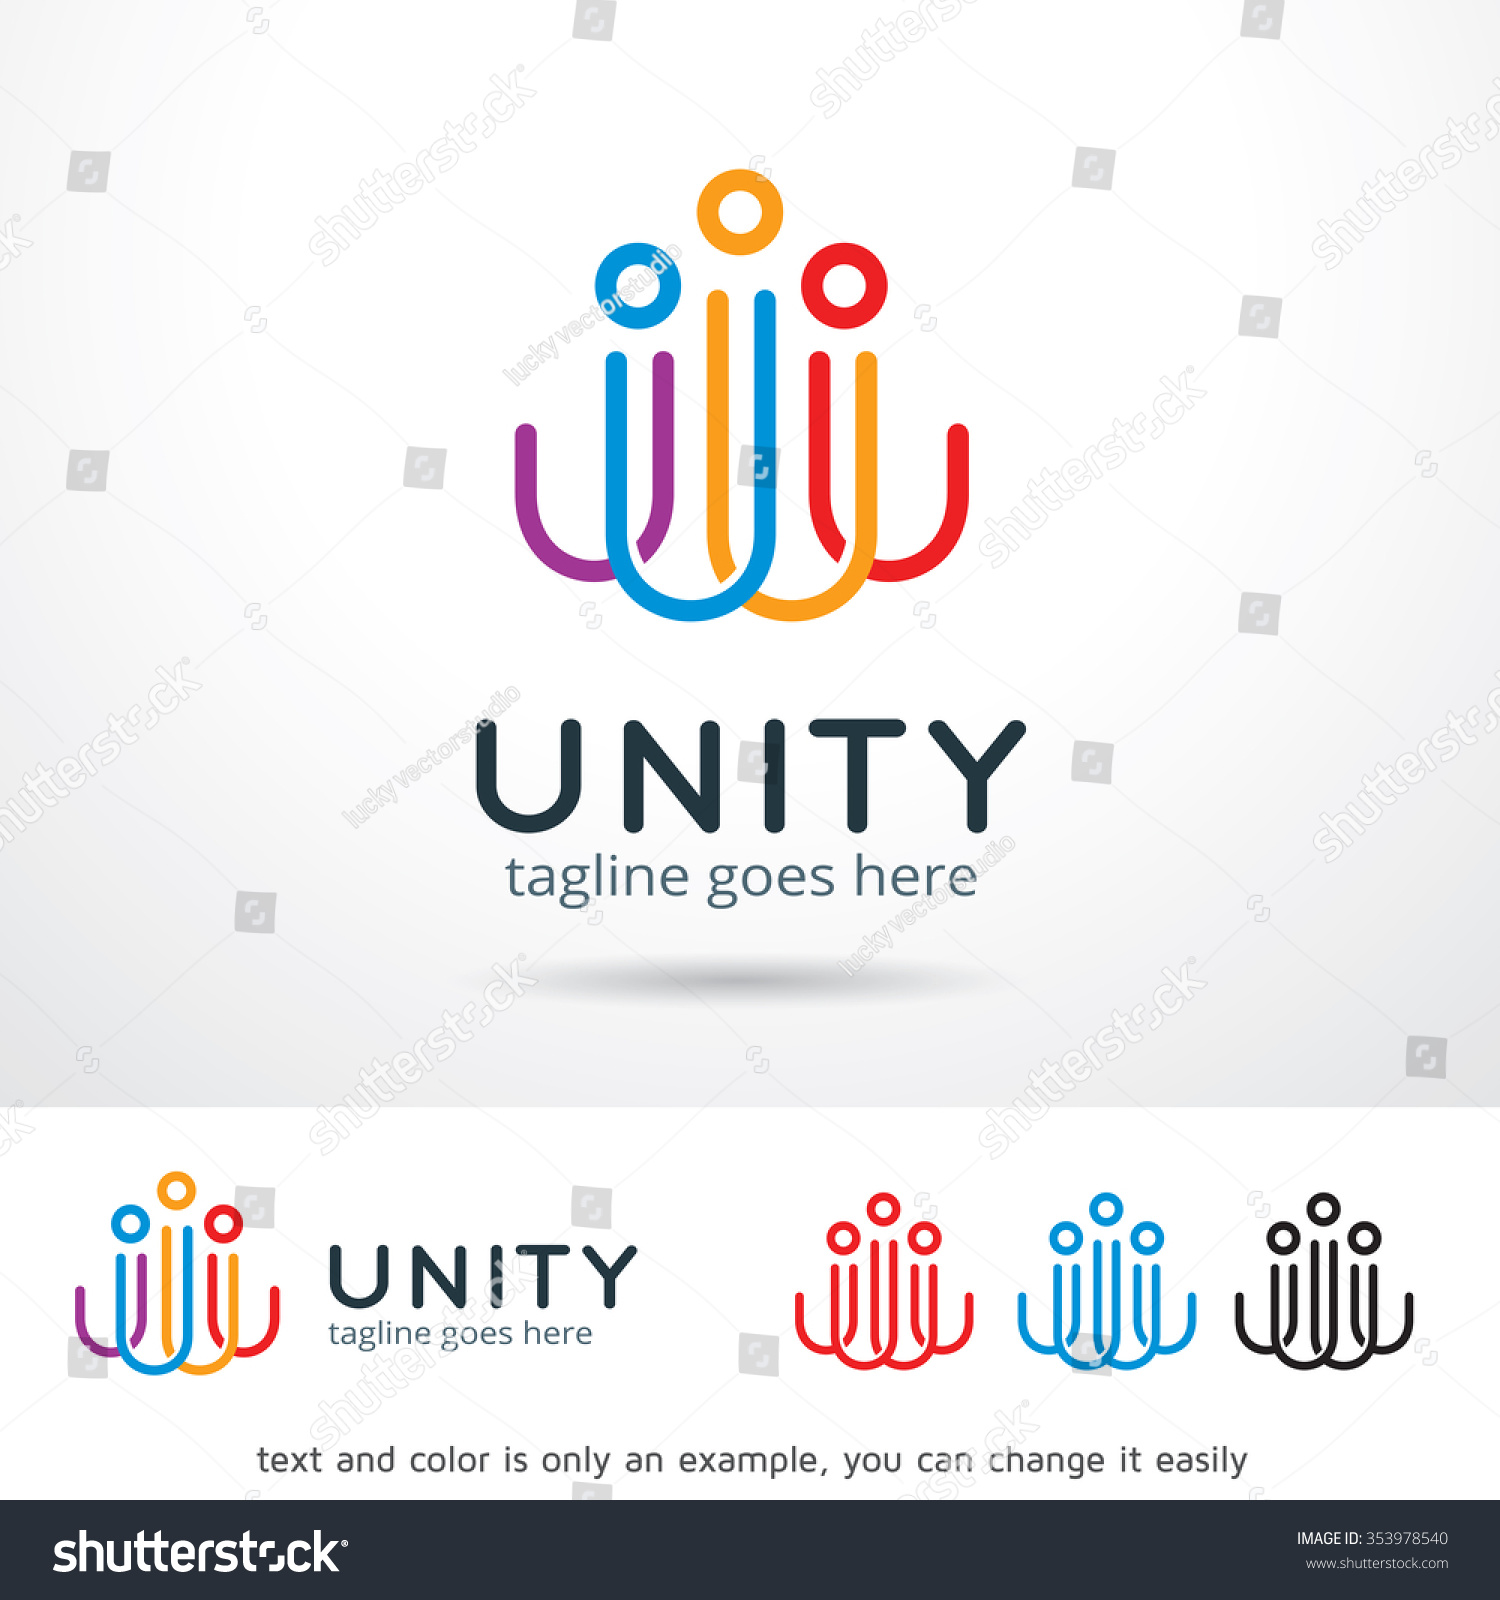 Unity Logo Design Free Download